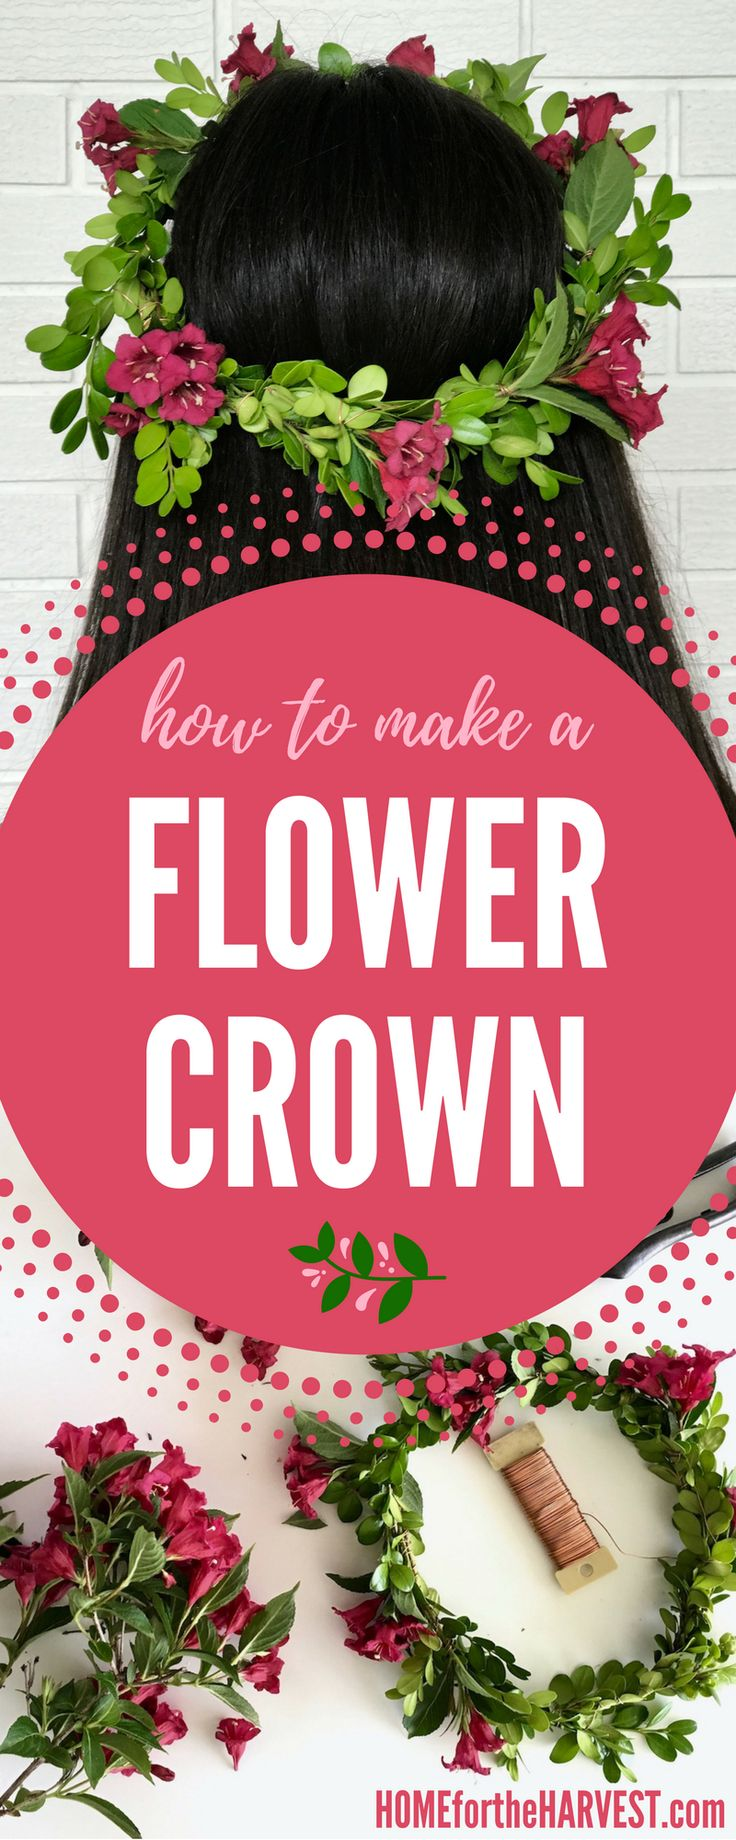 This DIY tutorial shows the exact steps for making your own flower crown from real flowers and greenery | Home for the Harvest